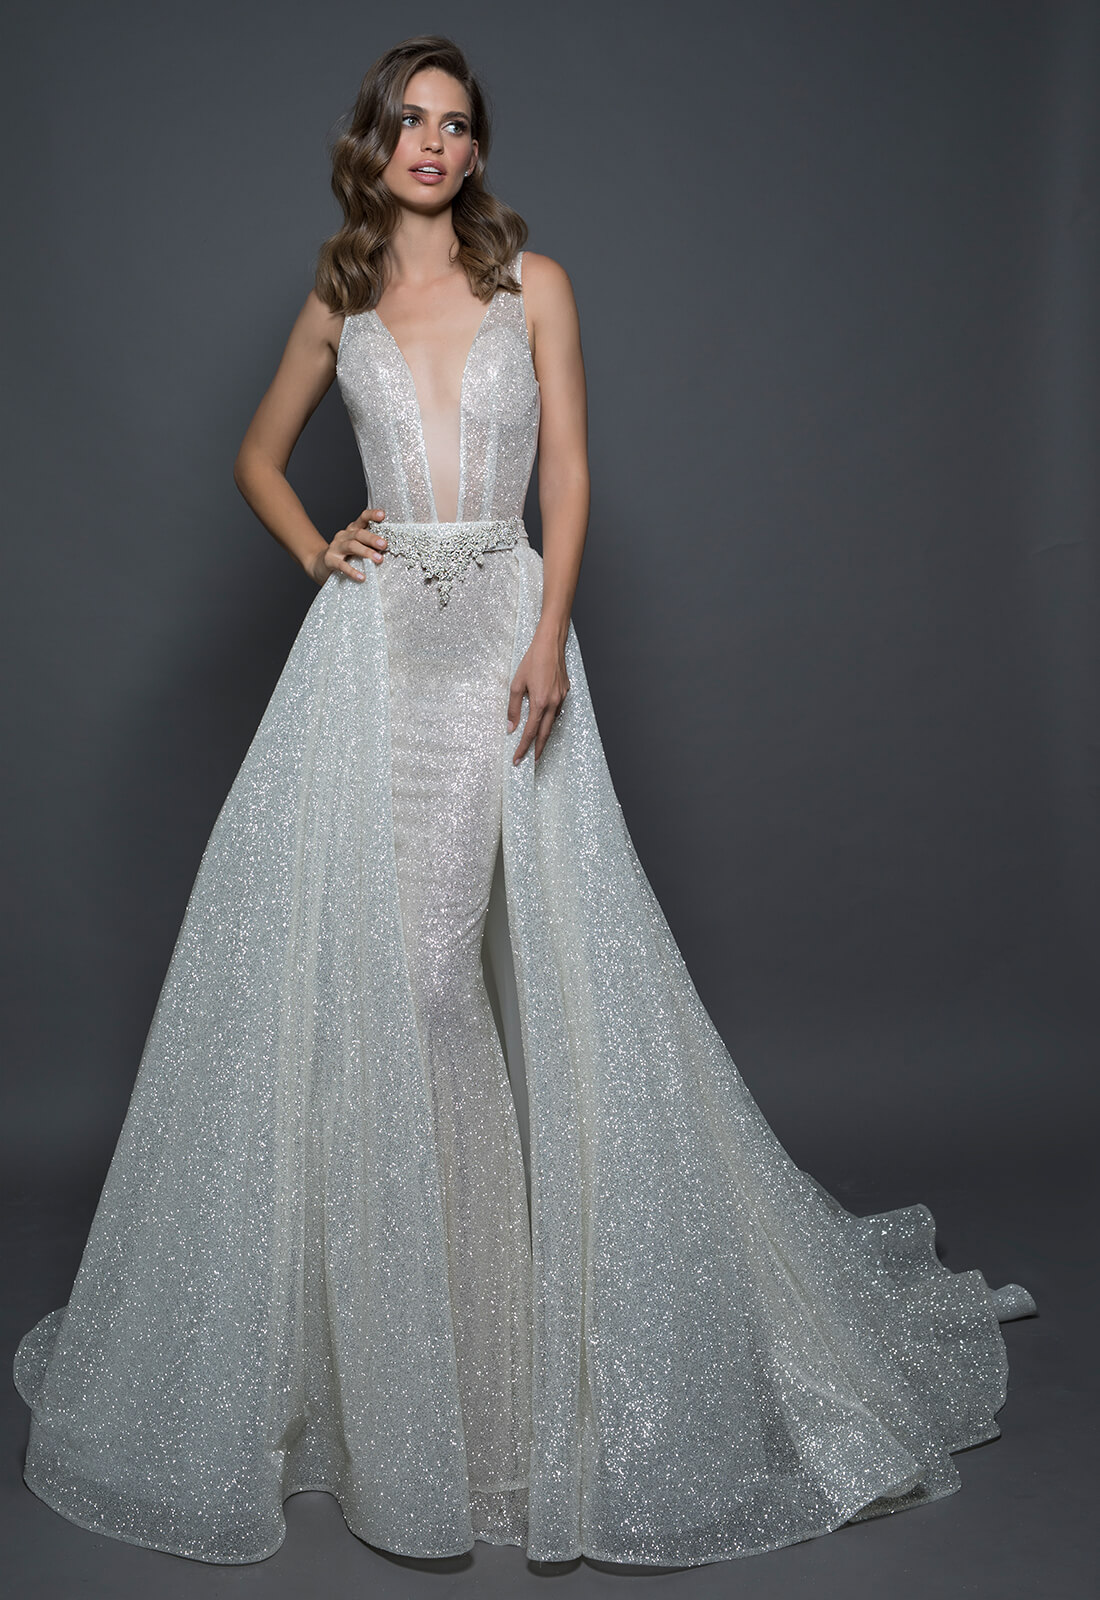 Detachable Sparkle Overskirt | Kleinfeld Bridal